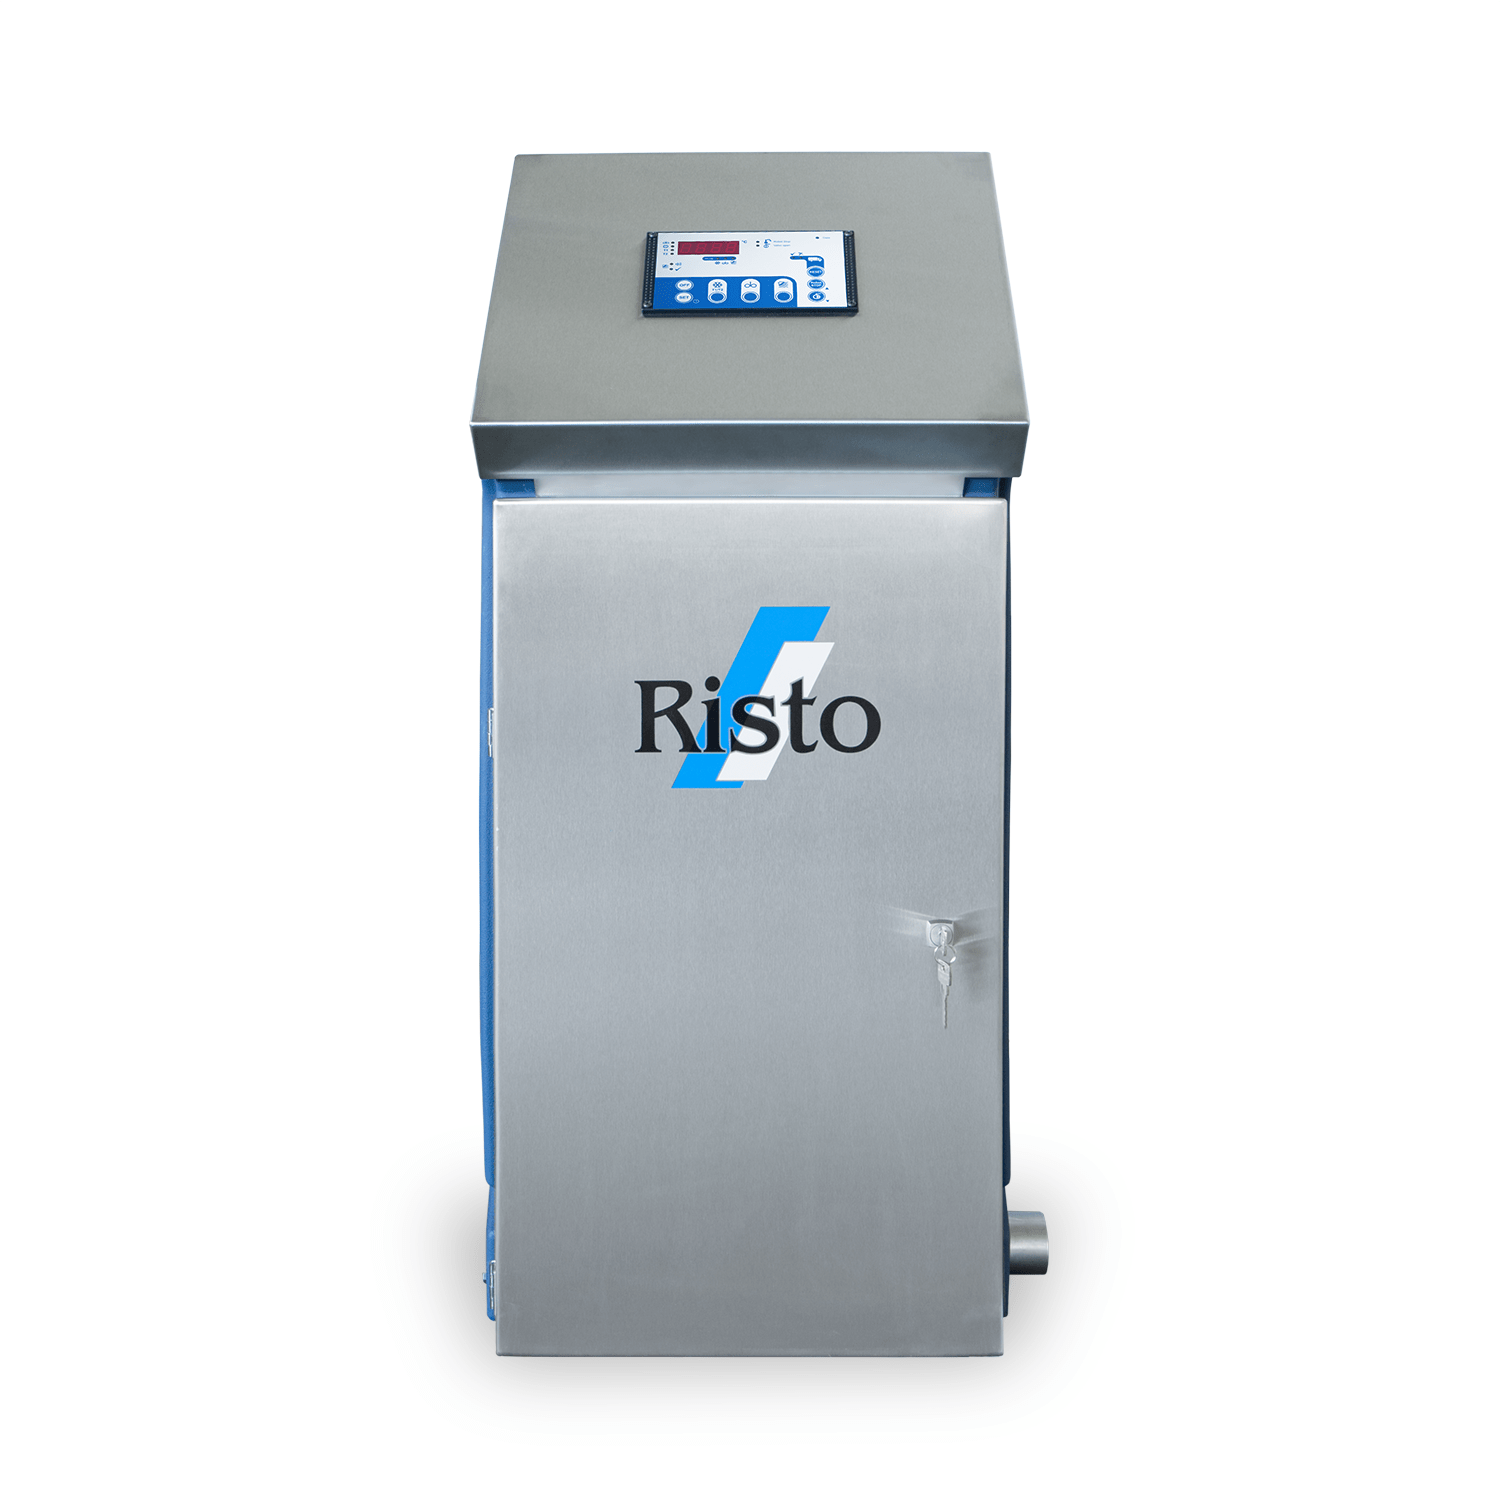 Risto Wash 2018 Milk Tank Cleaning System